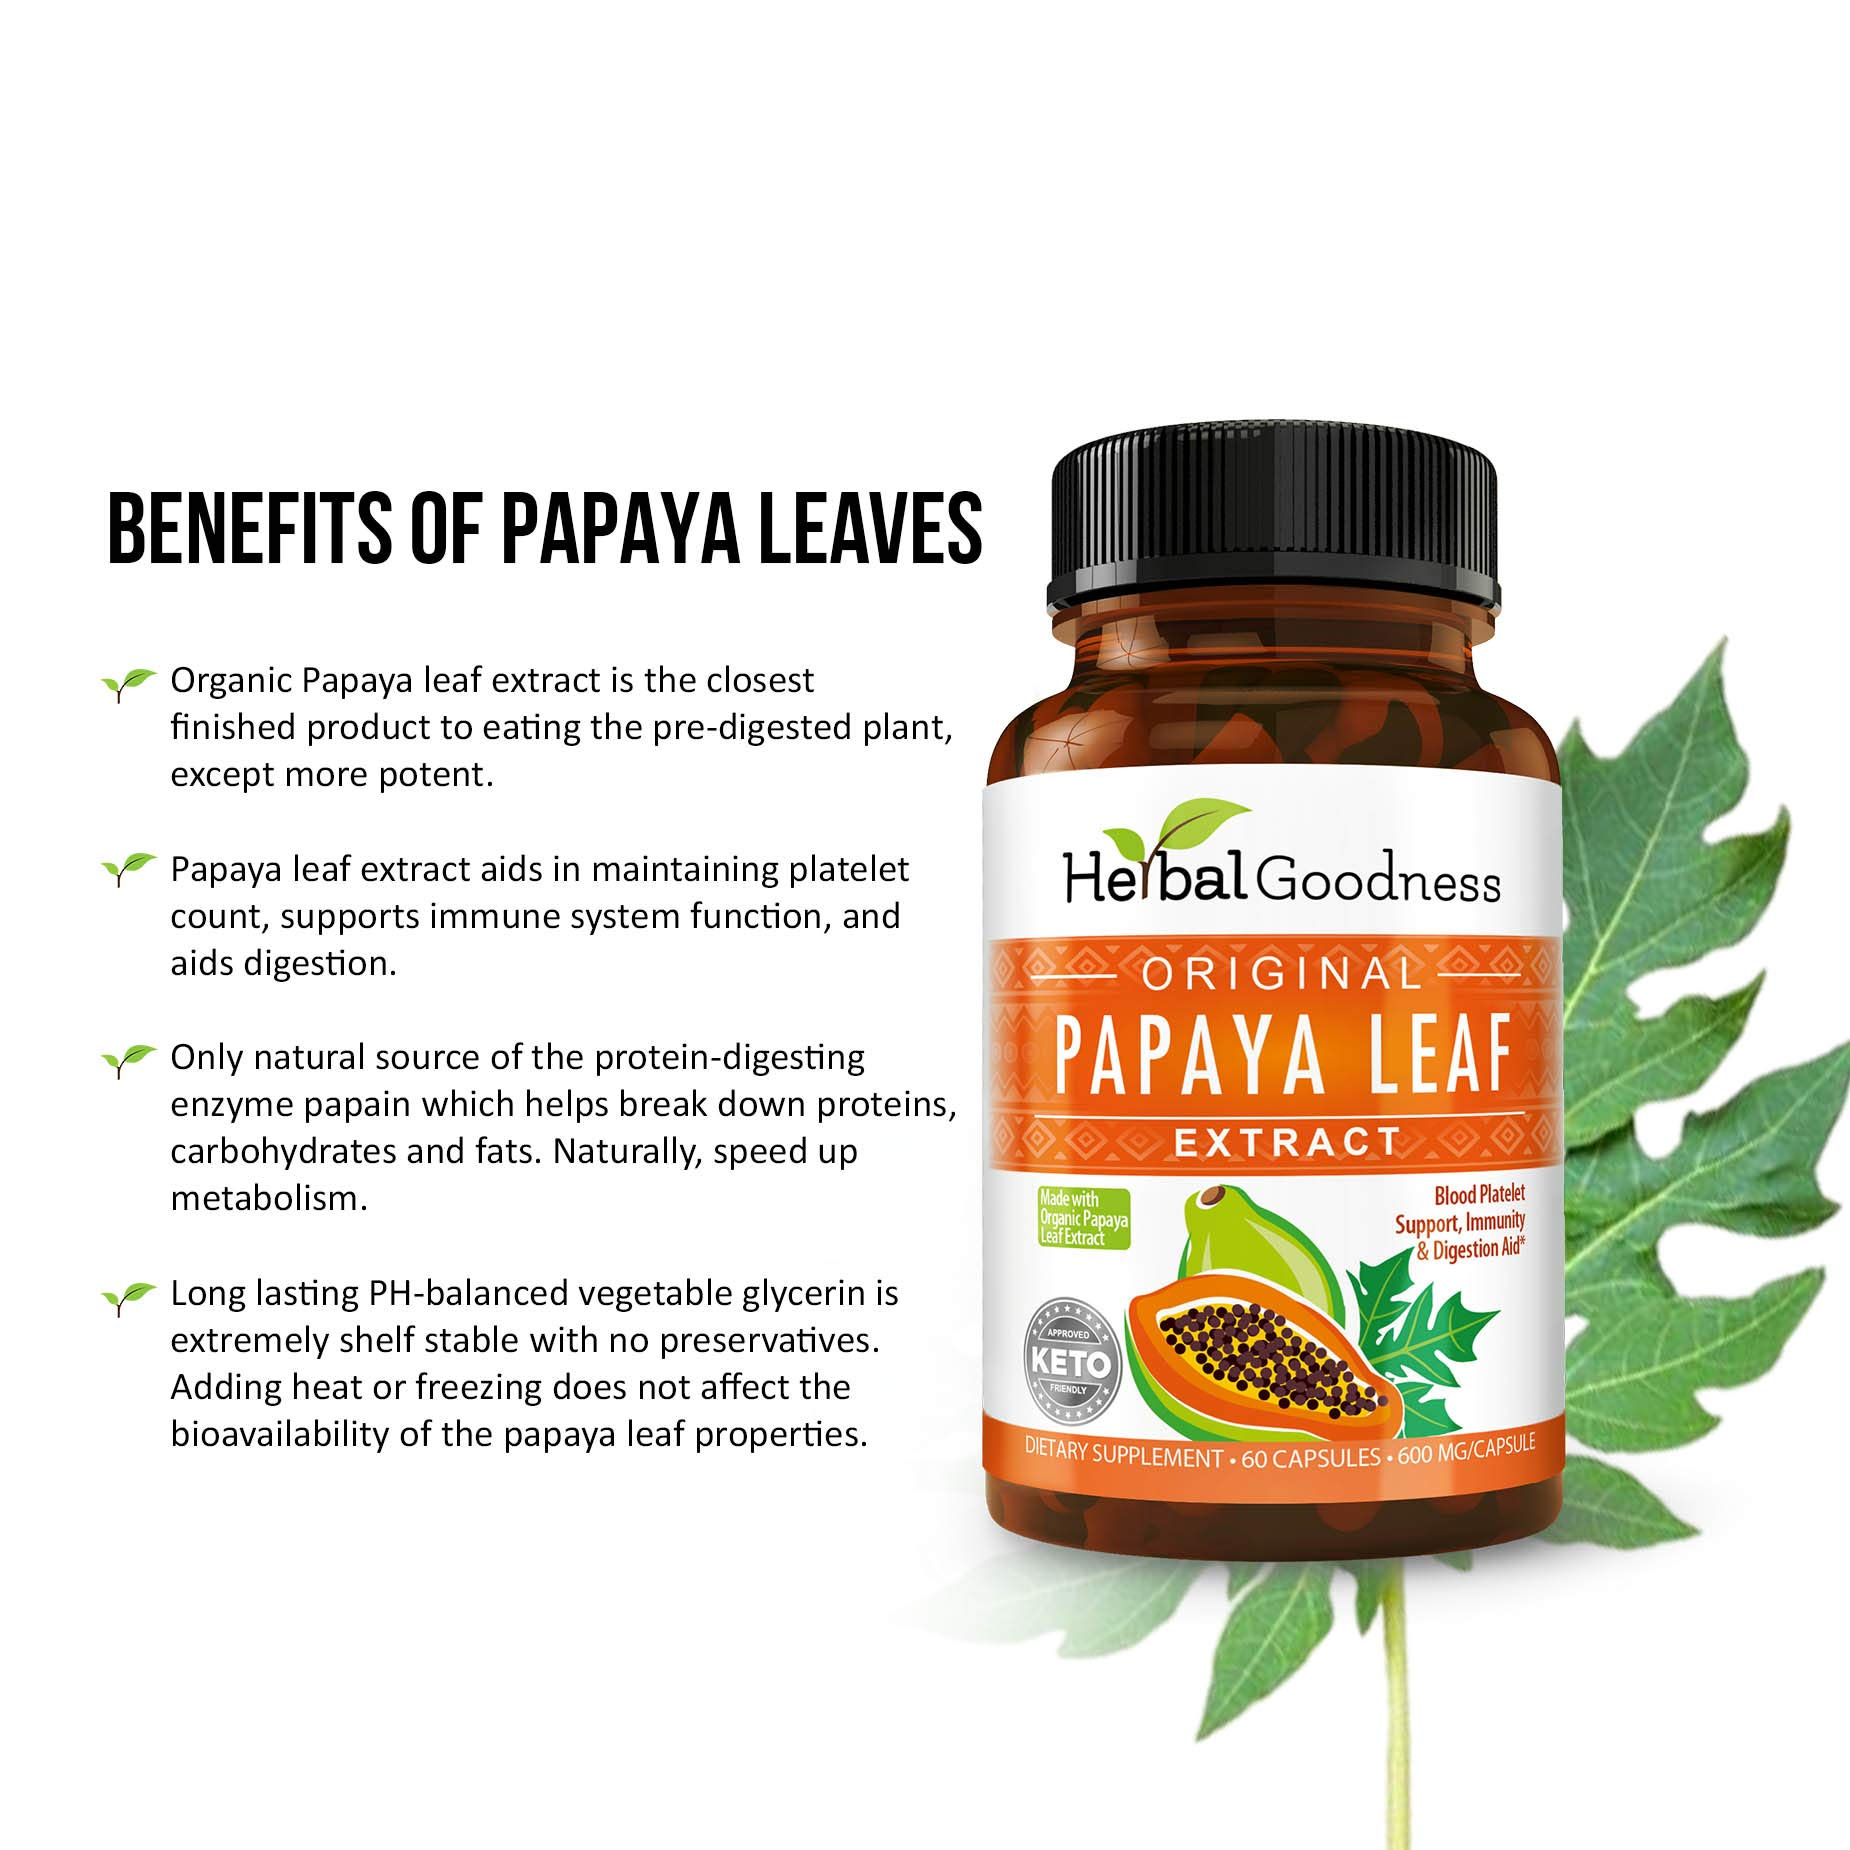 Papaya Leaf Extract - Natural Blood Platelet Level Boost, Bone Marrow Support